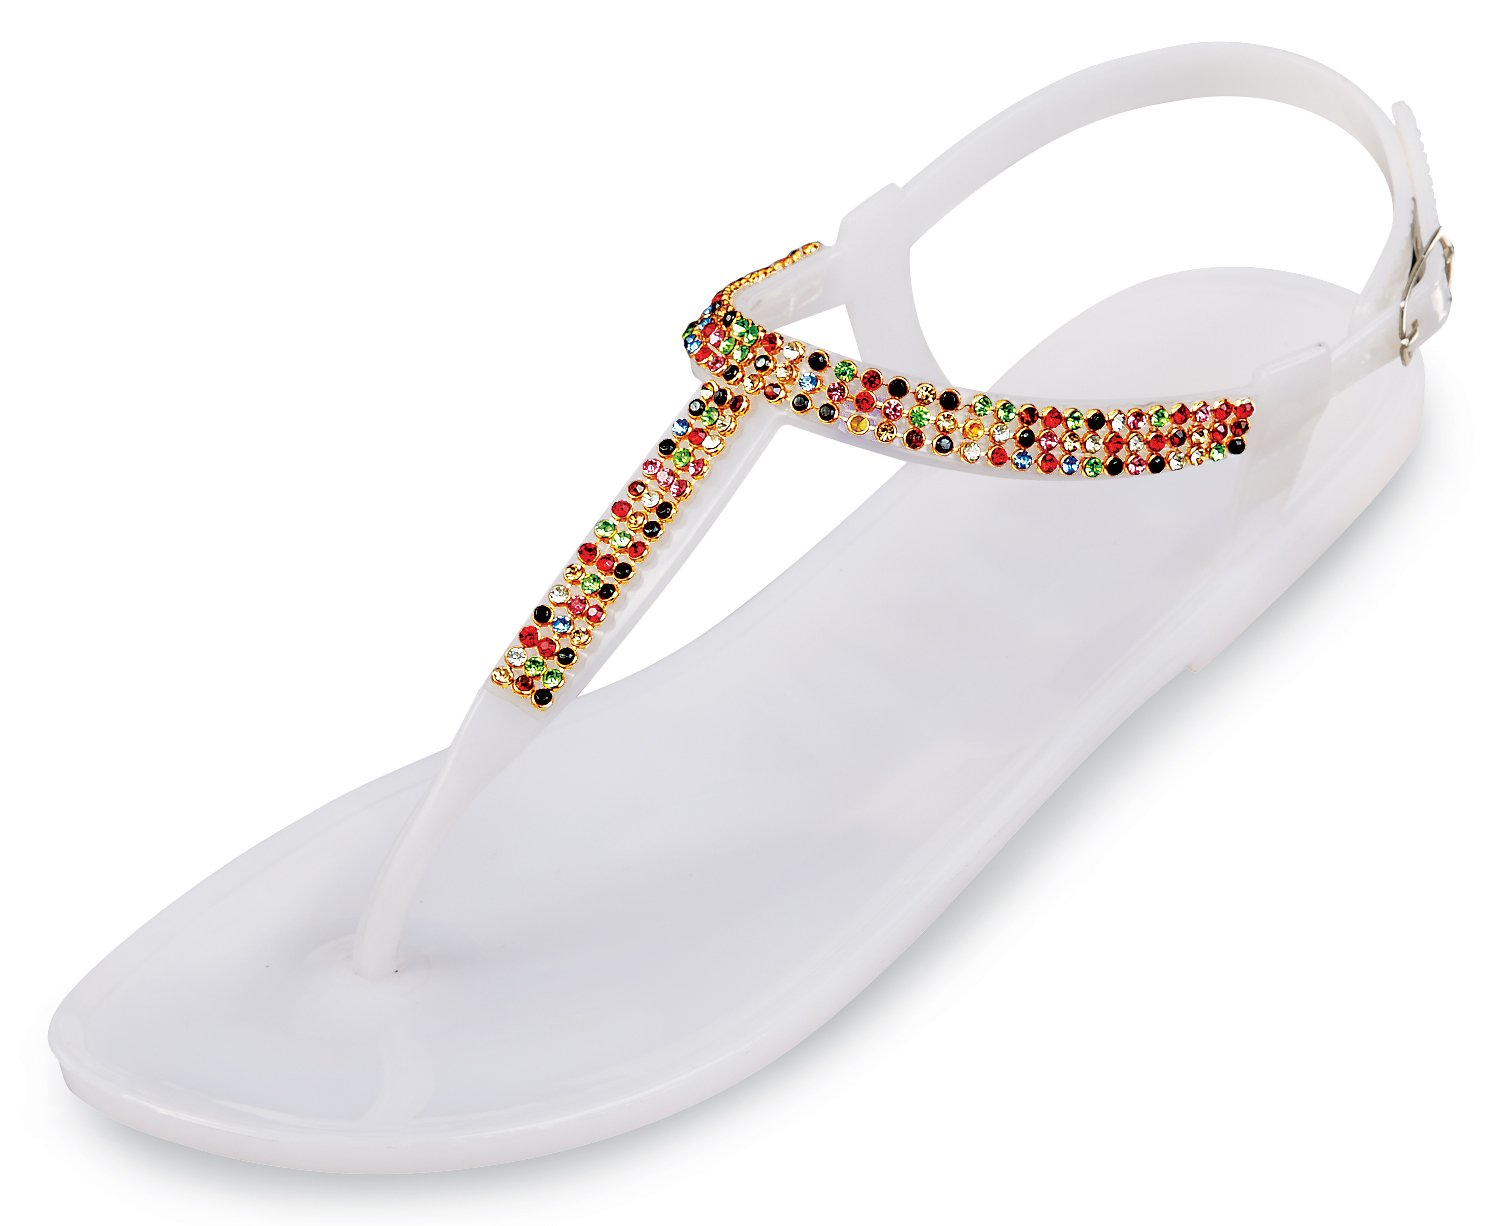 Rhinestone Flip Flops - Jelly Thong Sandals 7 B(M) US